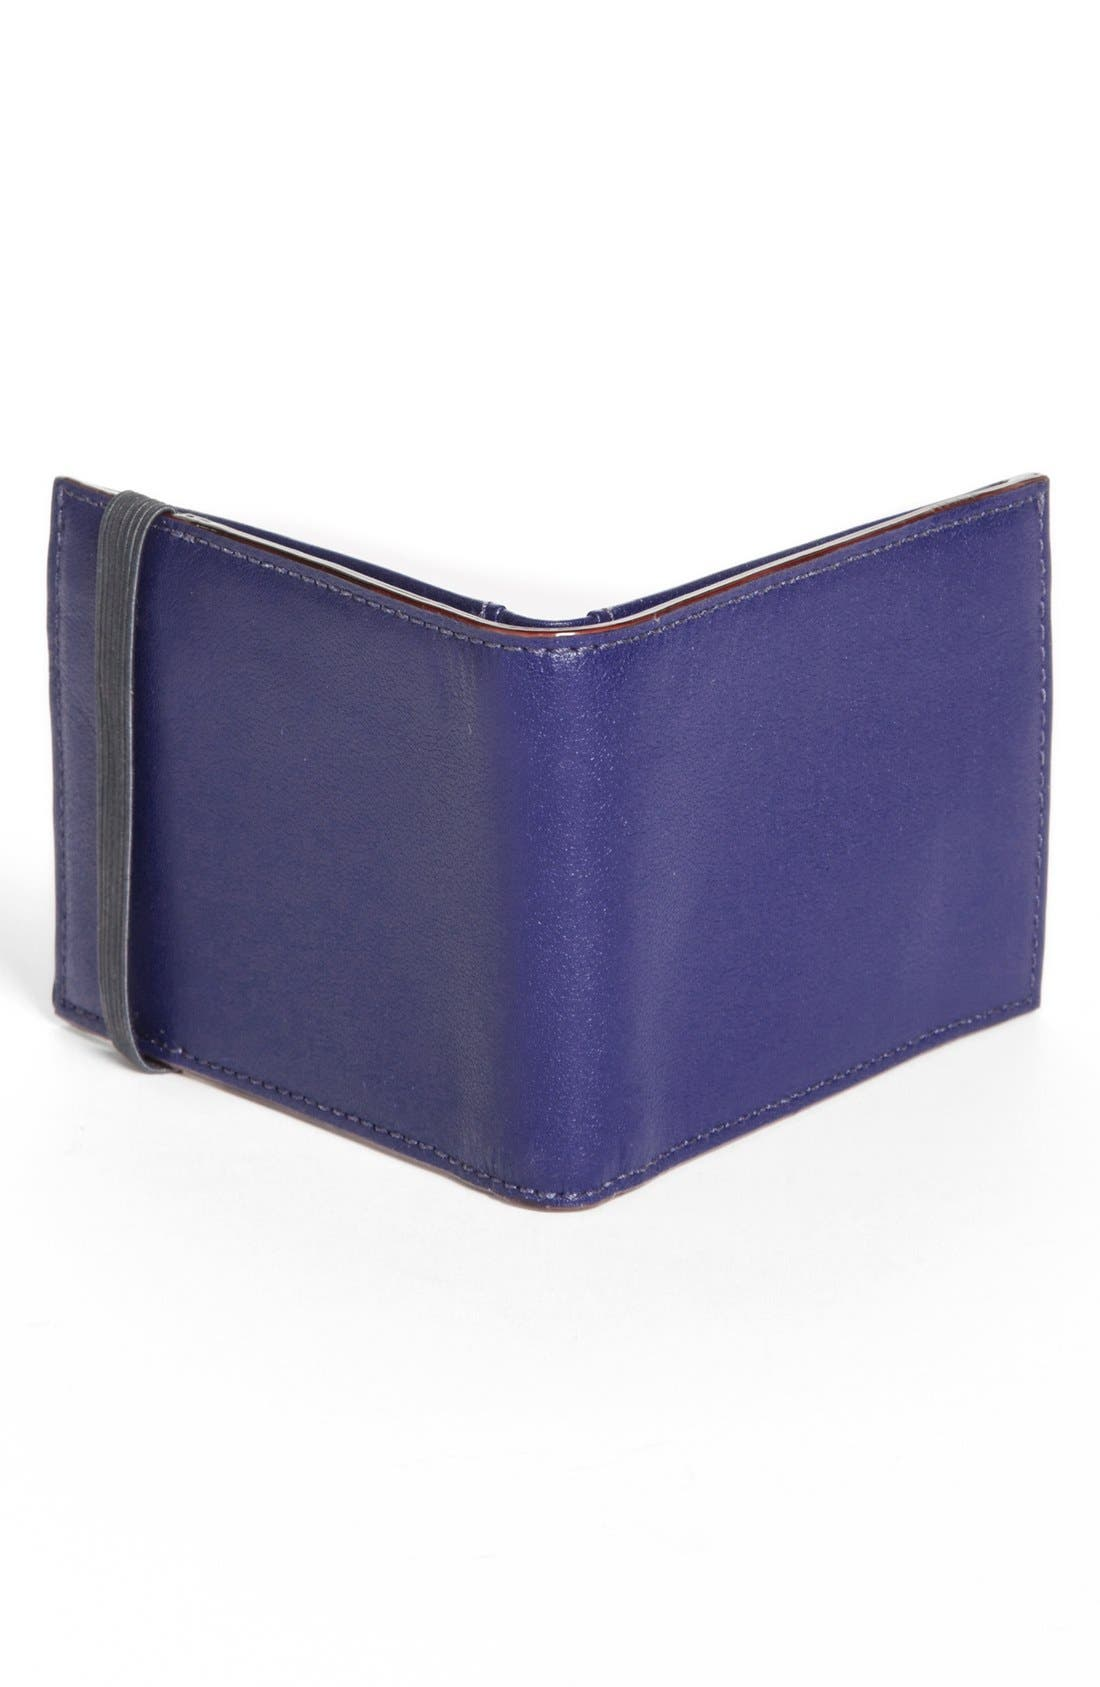 Alternate Image 3  - Jack Spade Index Wallet